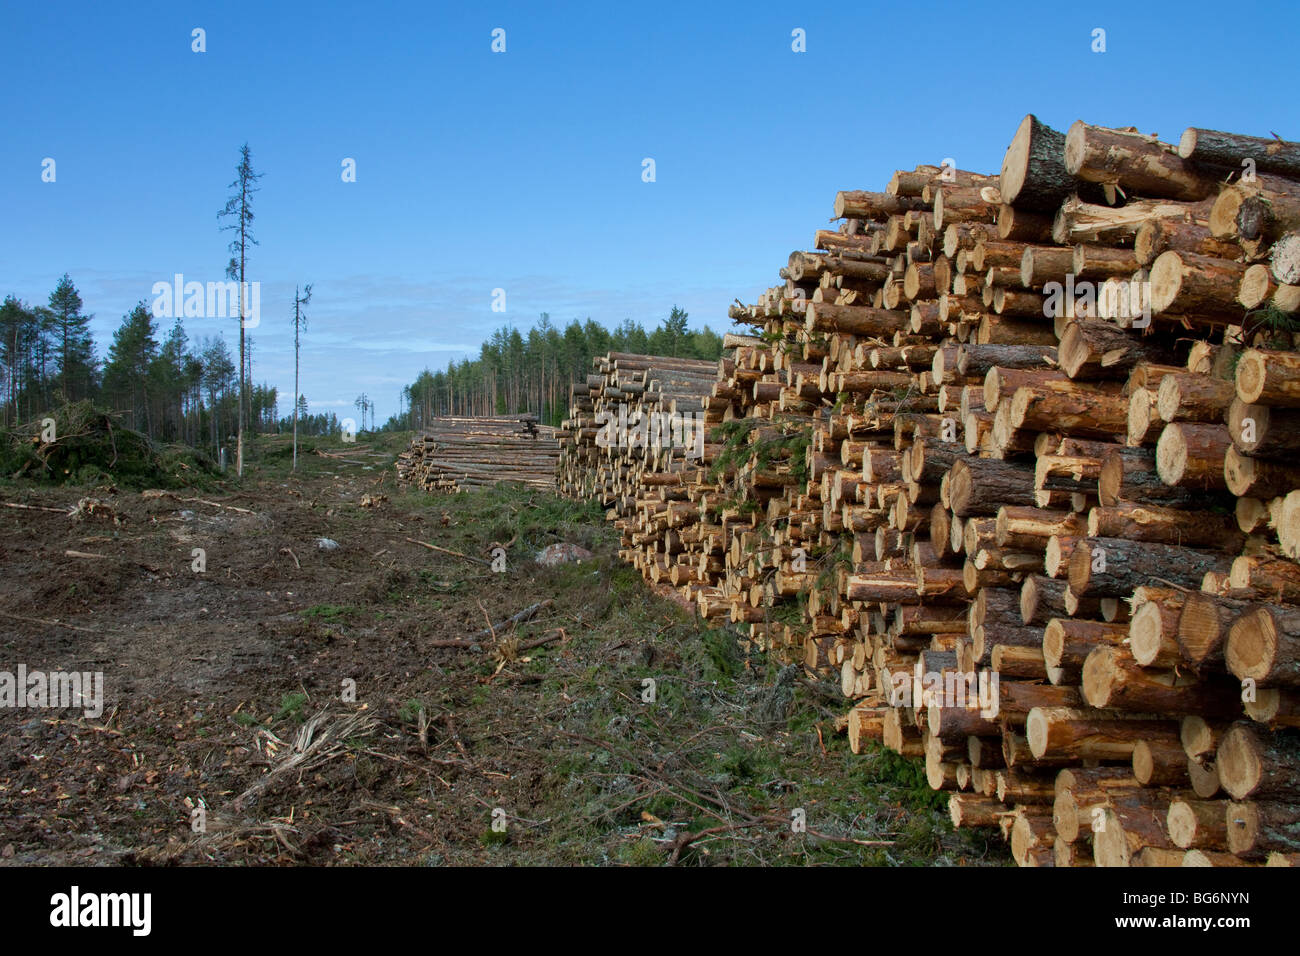 Logging industry showing pile of cut logs trees timber for Pine tree timber